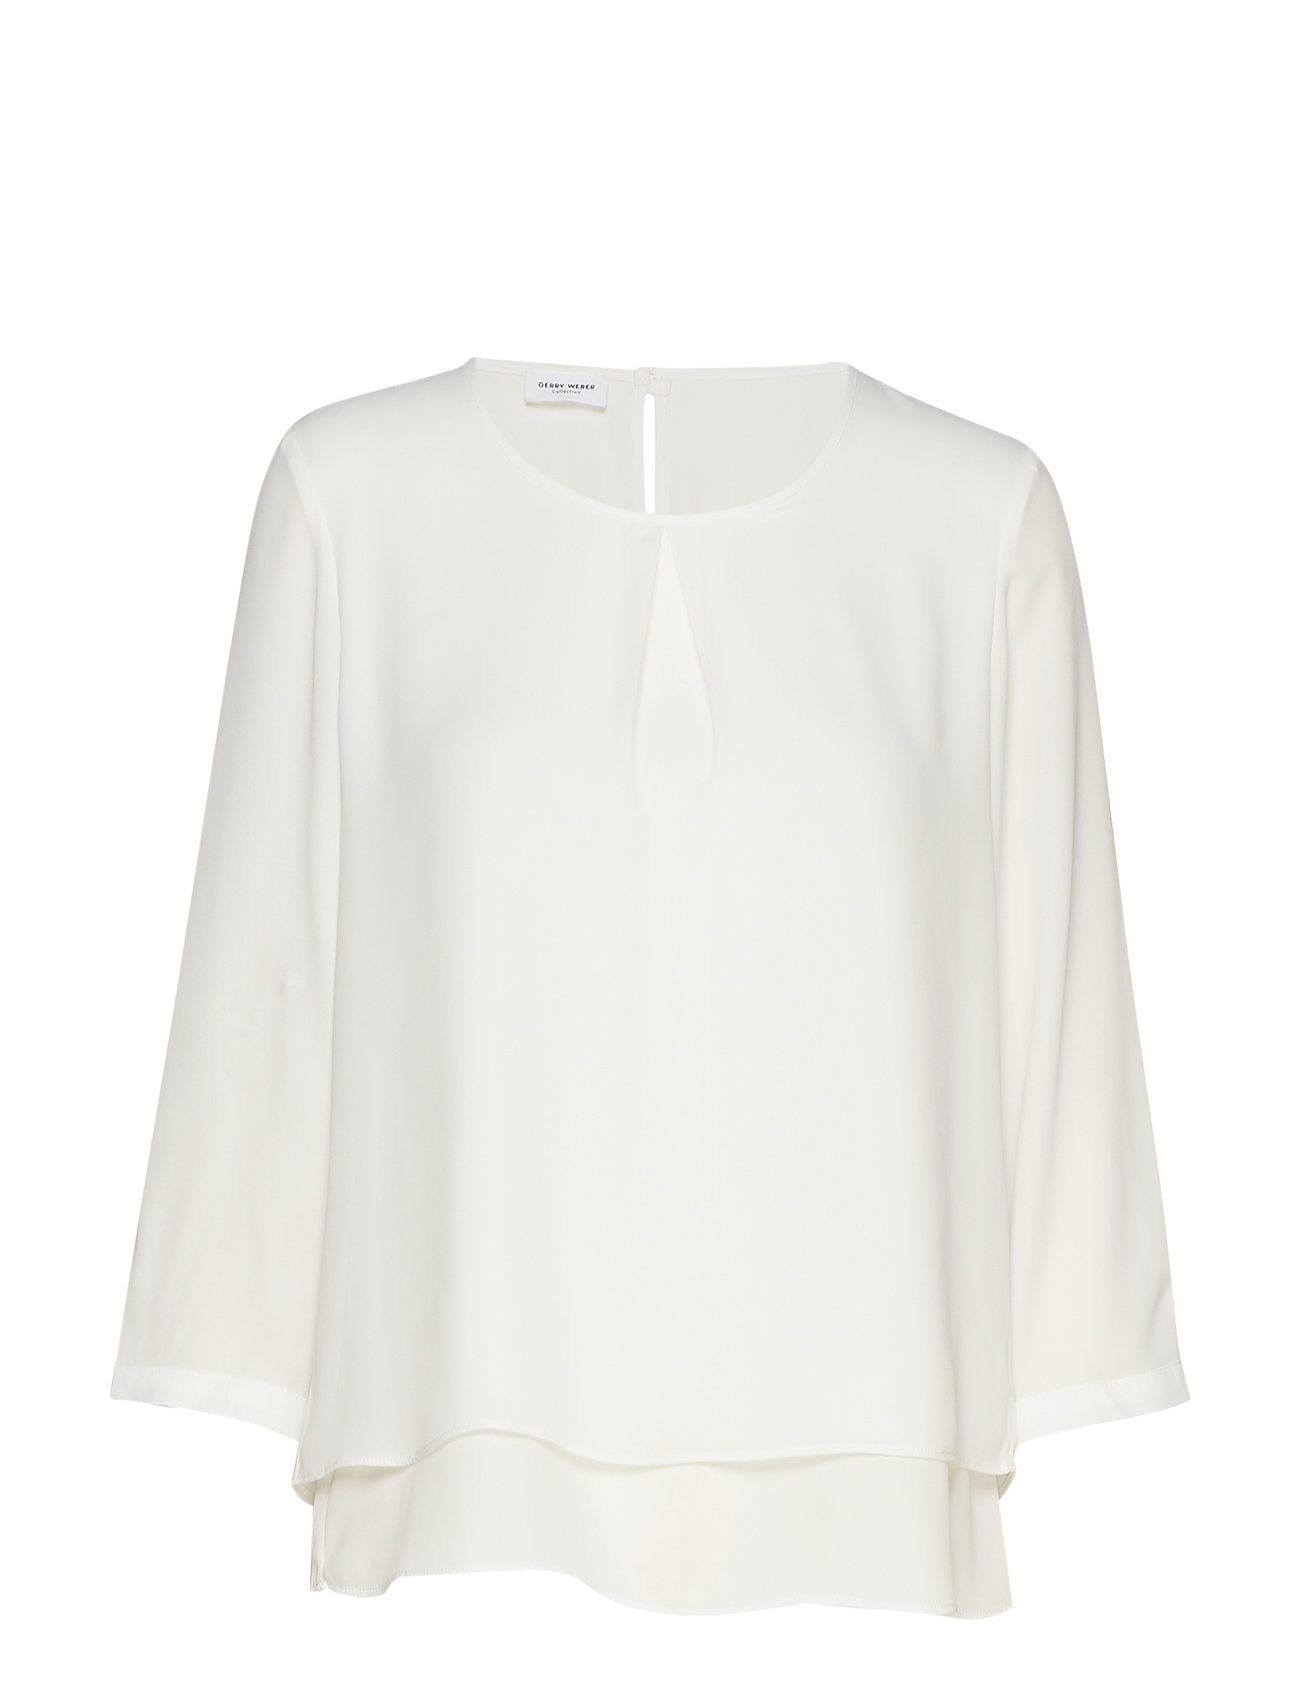 Gerry Weber BLOUSE 3/4-SLEEVE - OFF-WHITE